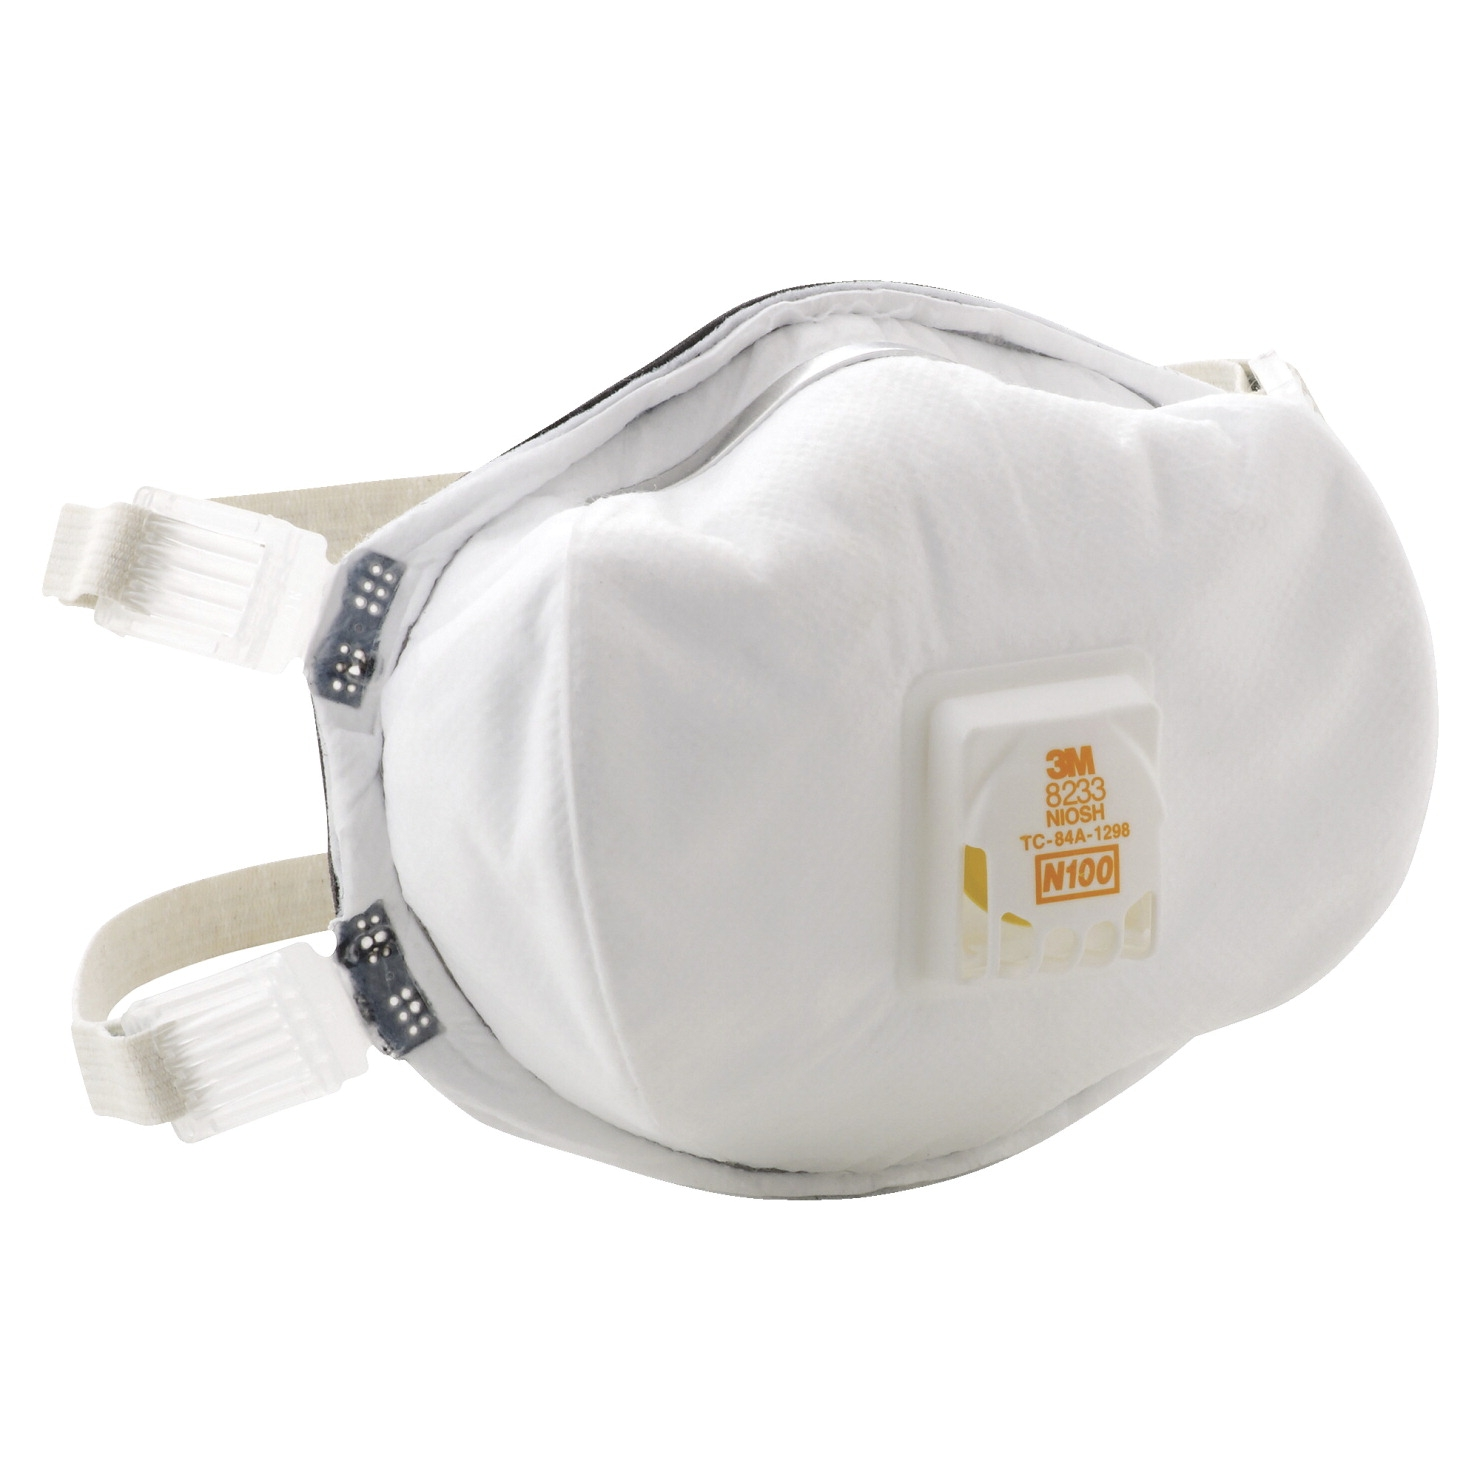 3m Particulate Respirator; White - 1091862 - Facilities Management Facility Supplies First Aid Health Supplies Diagnostic Bandages And Masks 1091862